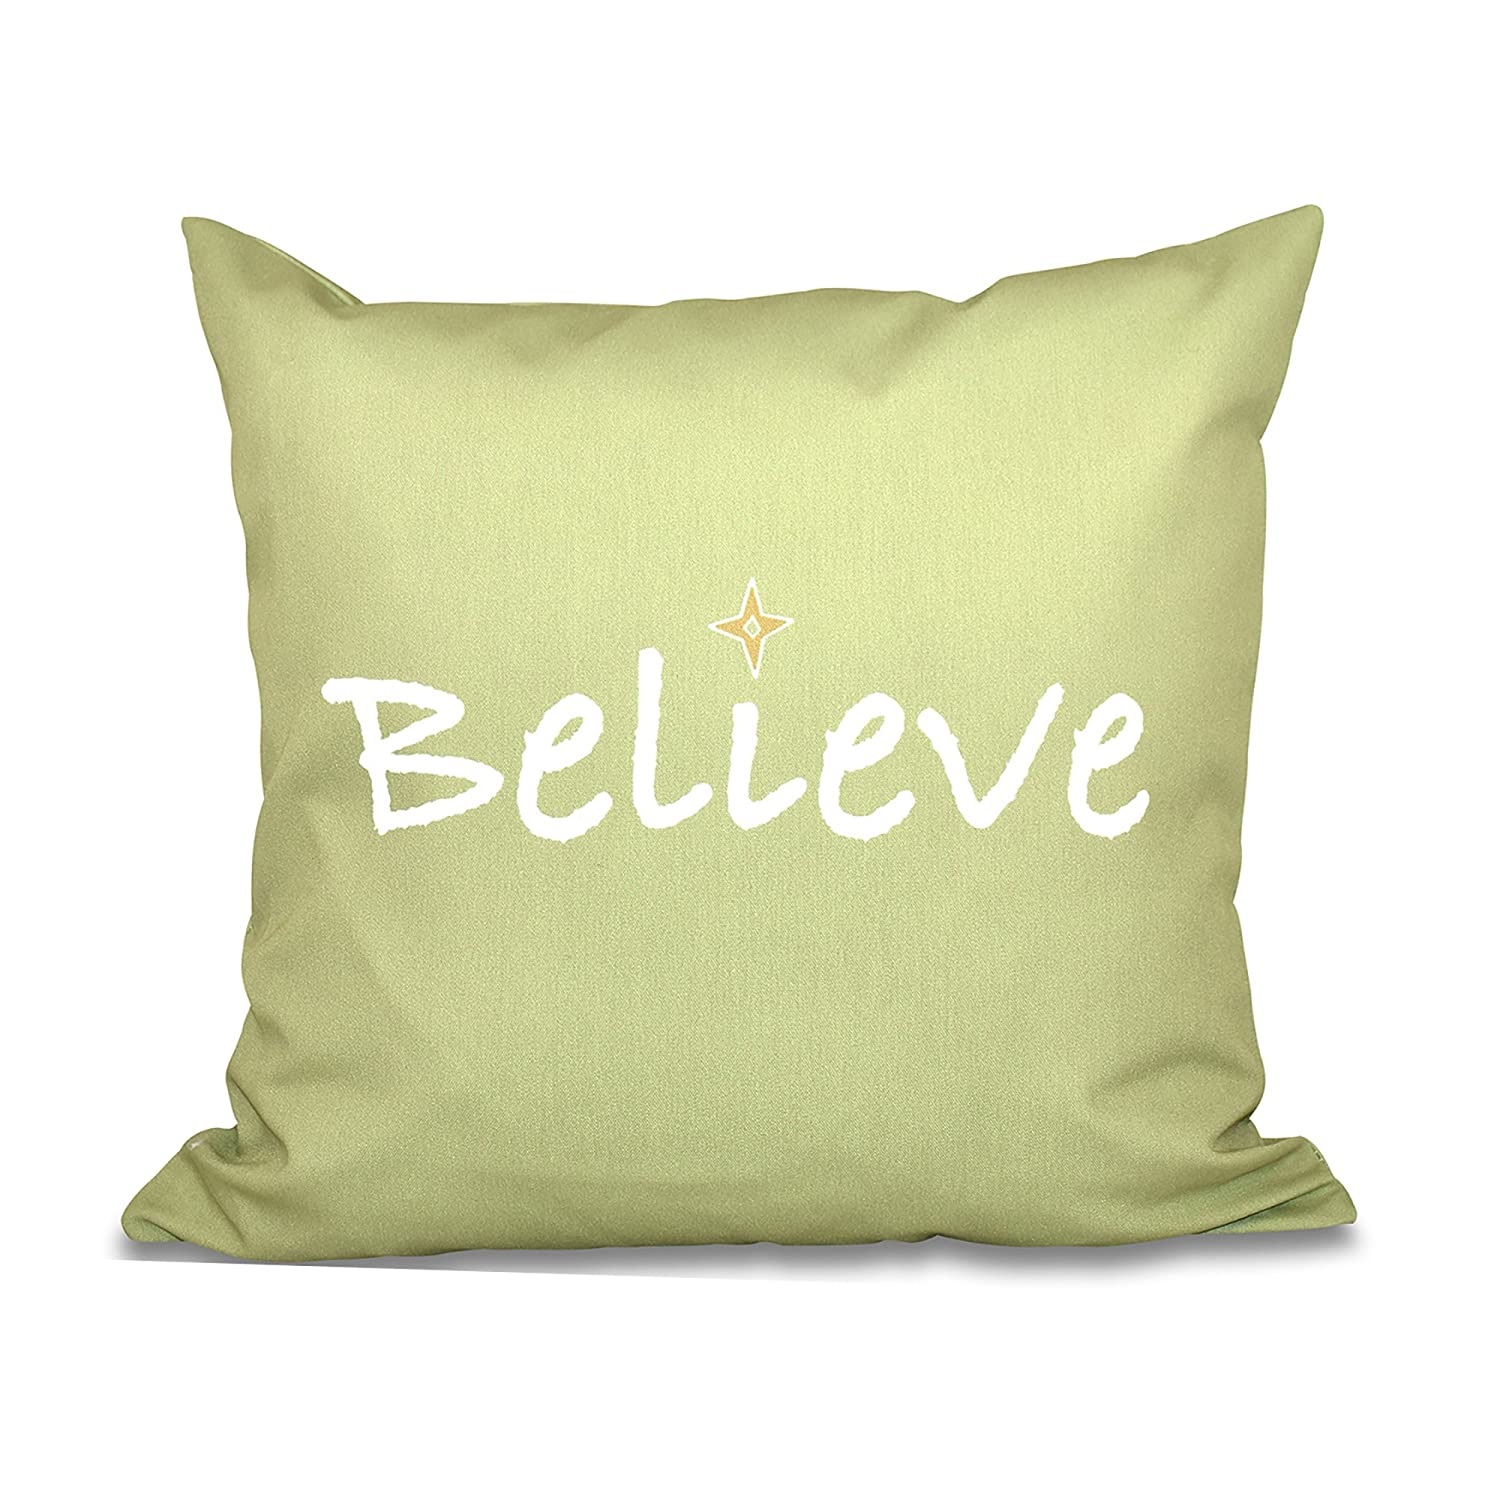 Word Print Pillow E by design PWHN523IV2-18 18 x 18-inch Cream Believe 18 x 18